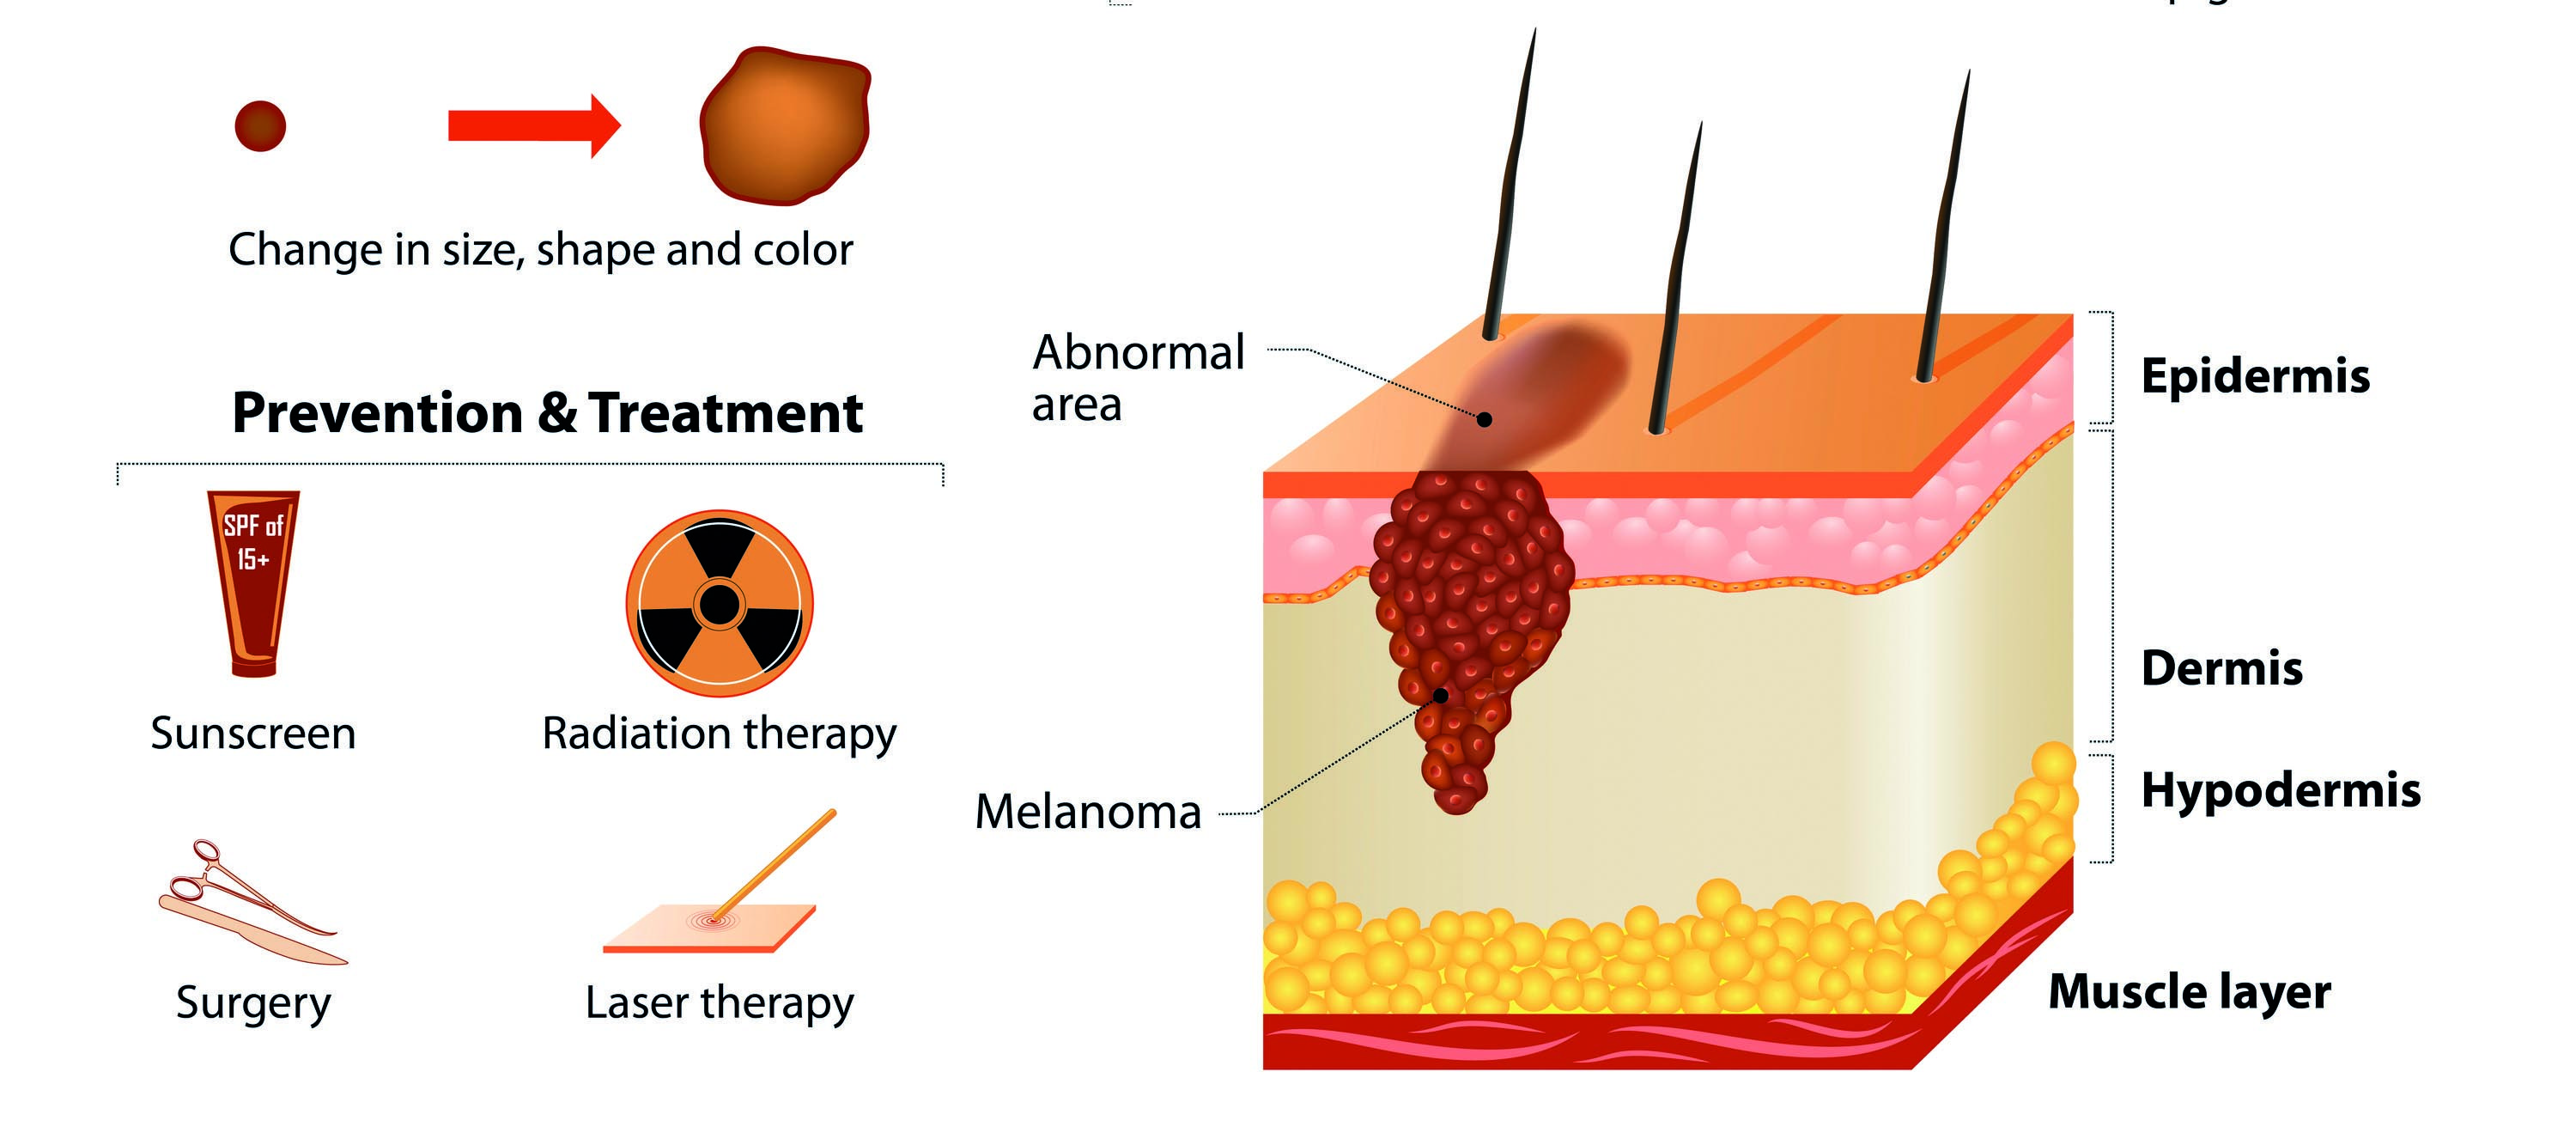 Treating actinic keratosis and Bowen's disease can help prevent skin cancer